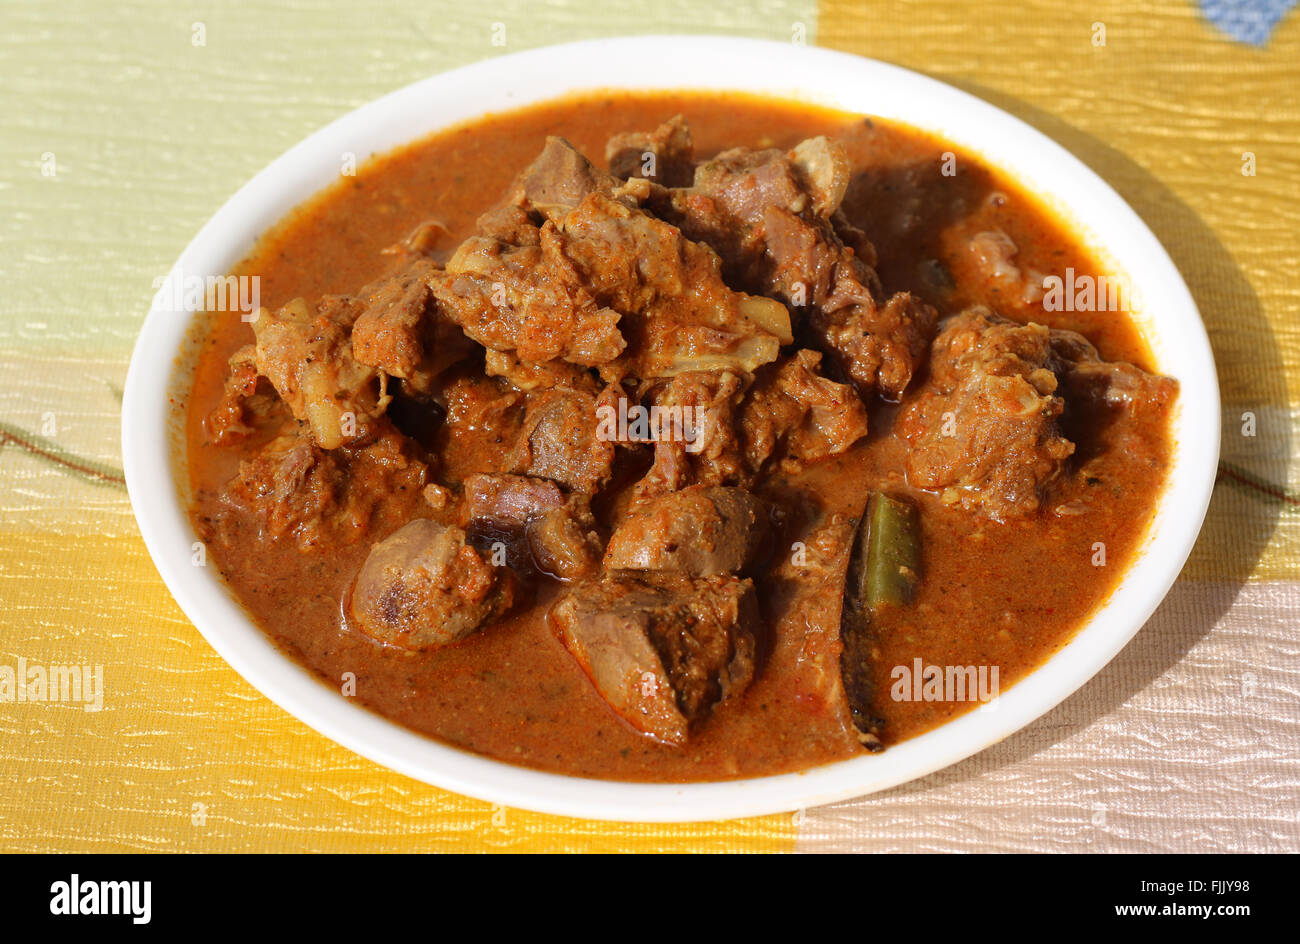 Indian style mutton curry - Stock Image